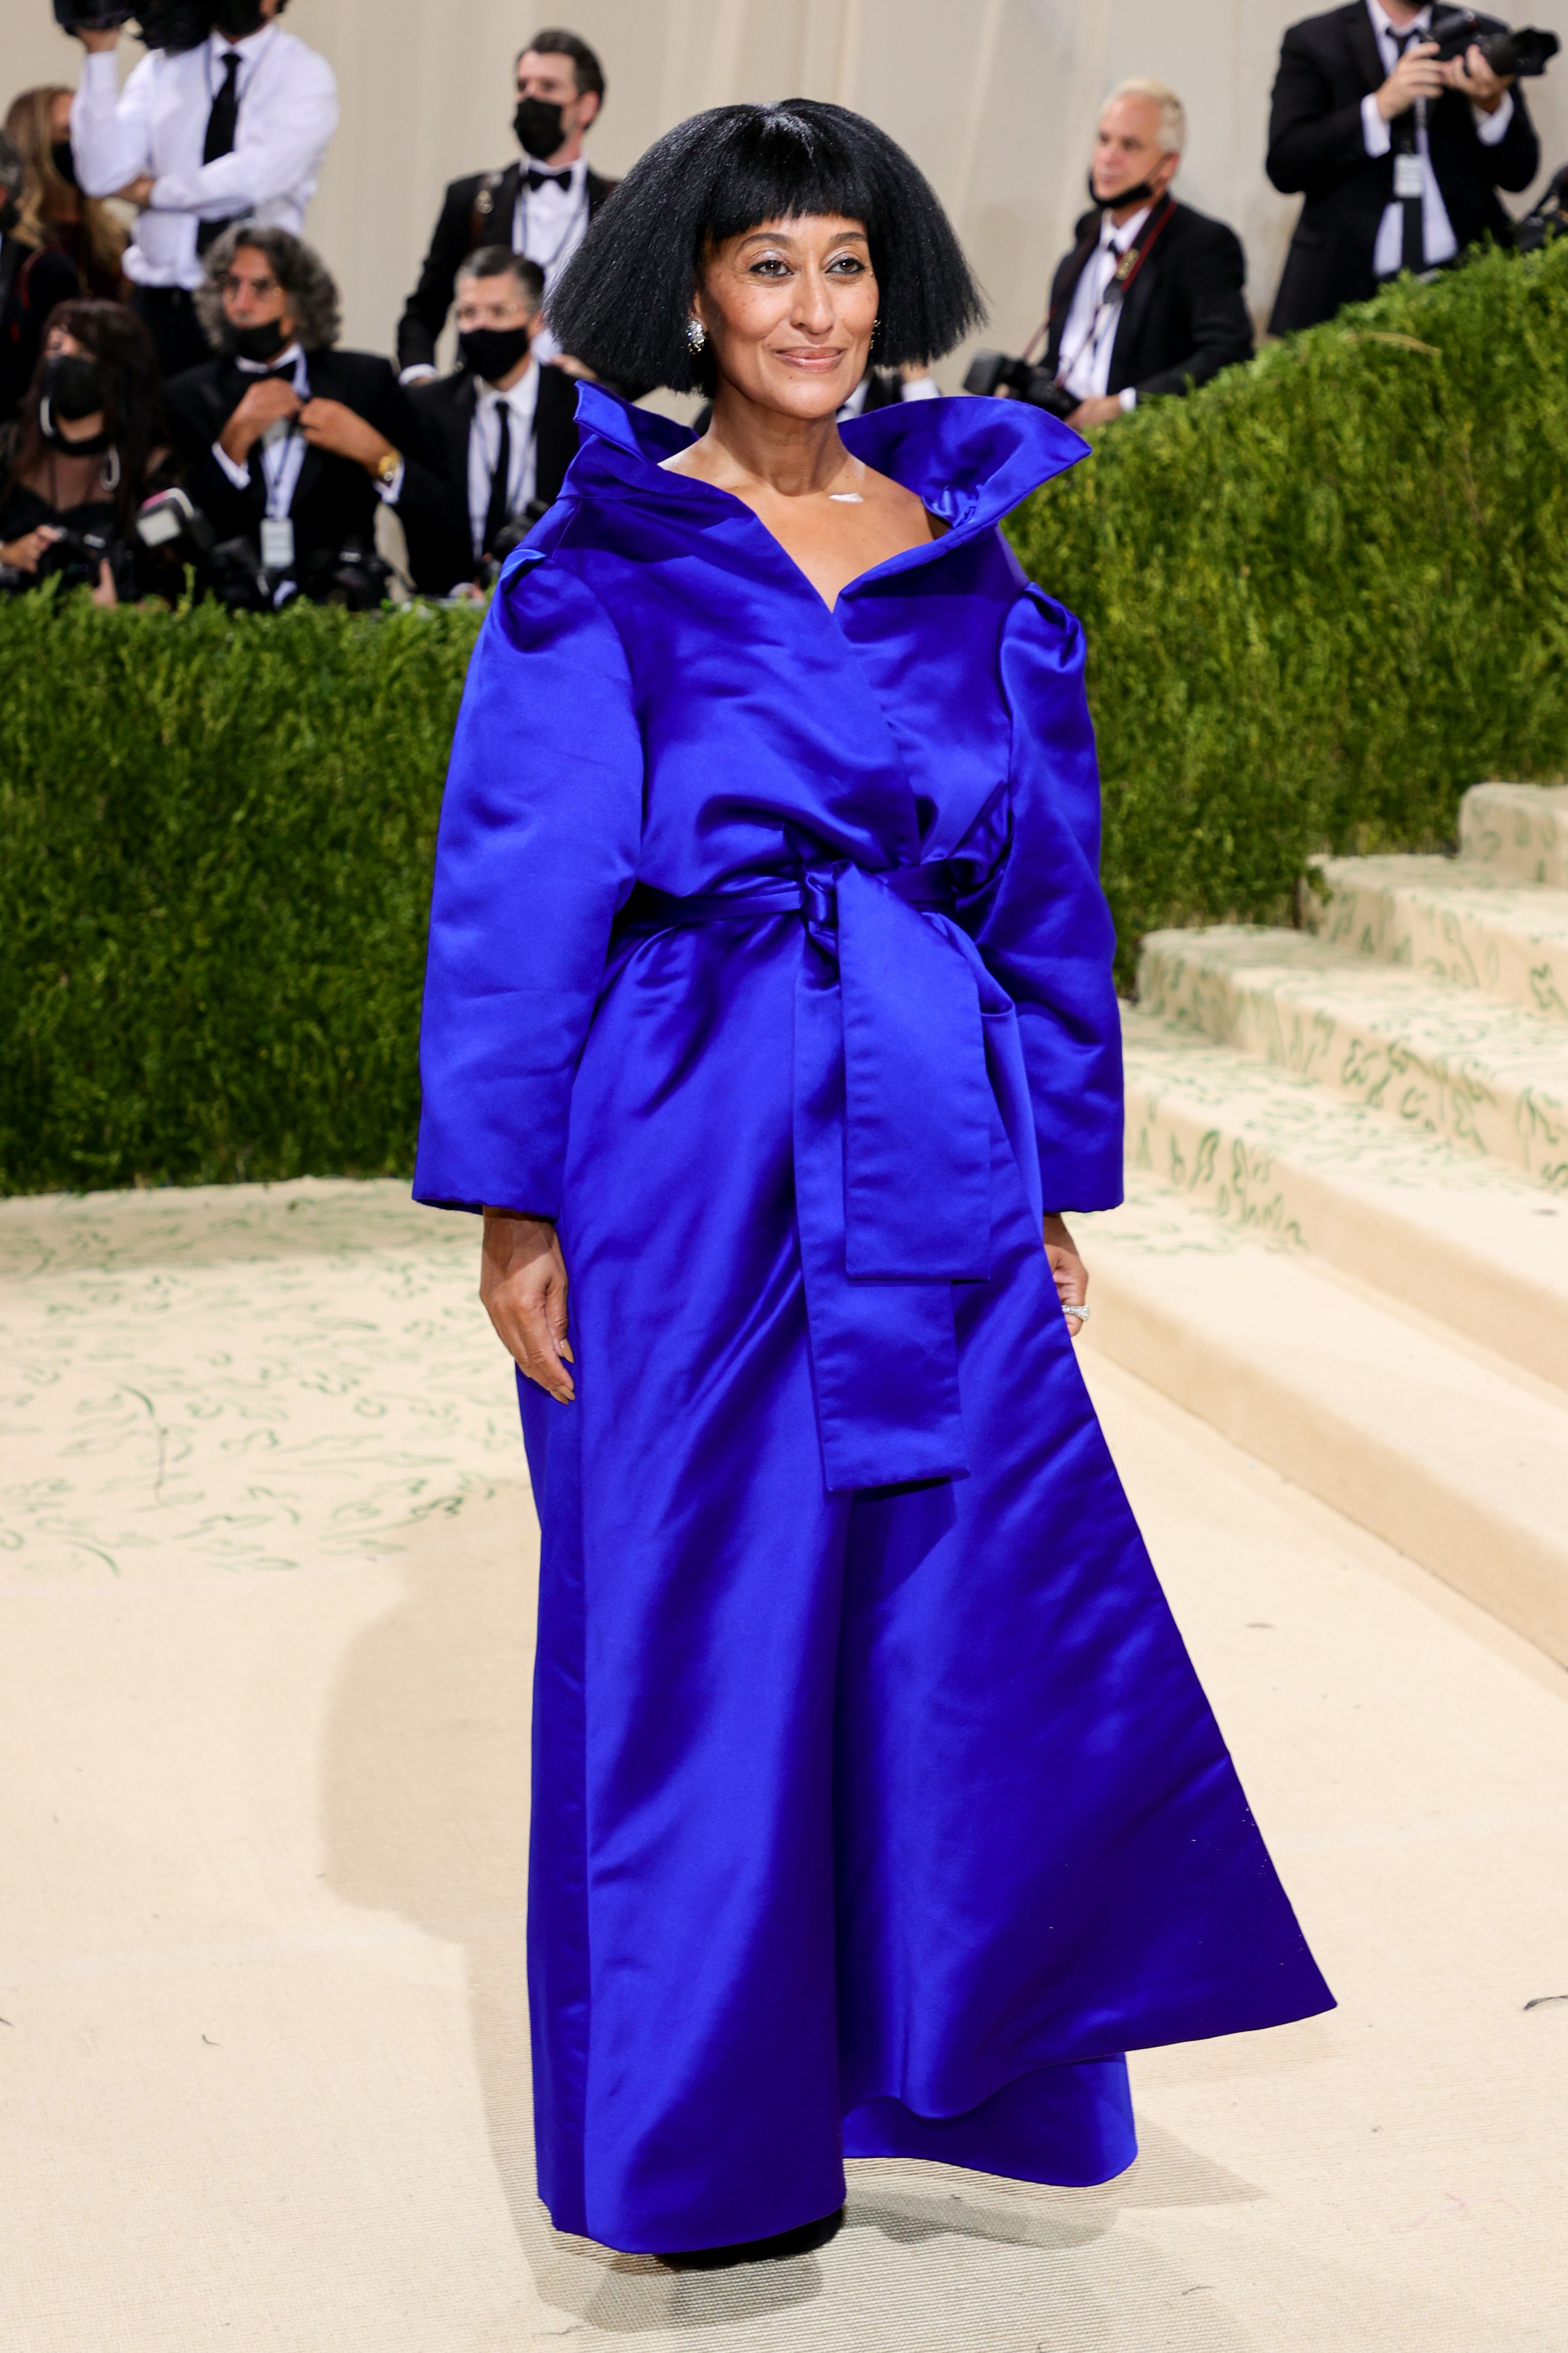 NEW YORK, NEW YORK - SEPTEMBER 13: Tracee Ellis Ross attends The 2021 Met Gala Celebrating In America: A Lexicon Of Fashion at Metropolitan Museum of Art on September 13, 2021 in New York City. (Photo by Theo Wargo/Getty Images) (Foto: Getty Images)